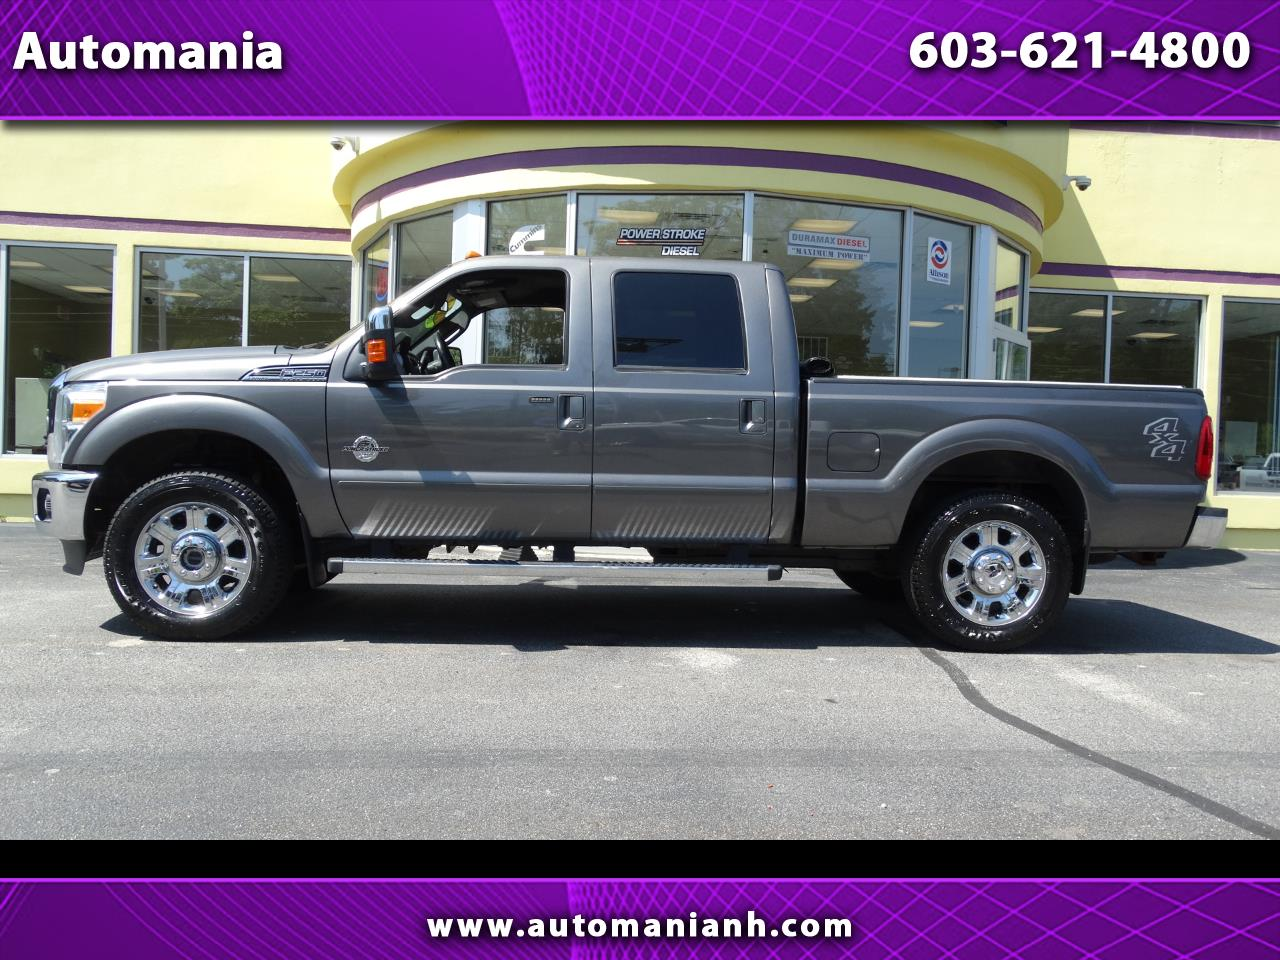 2012 Ford F-250 SD POWERSTROKE CREW CAB LARIAT DIESEL TRUCK